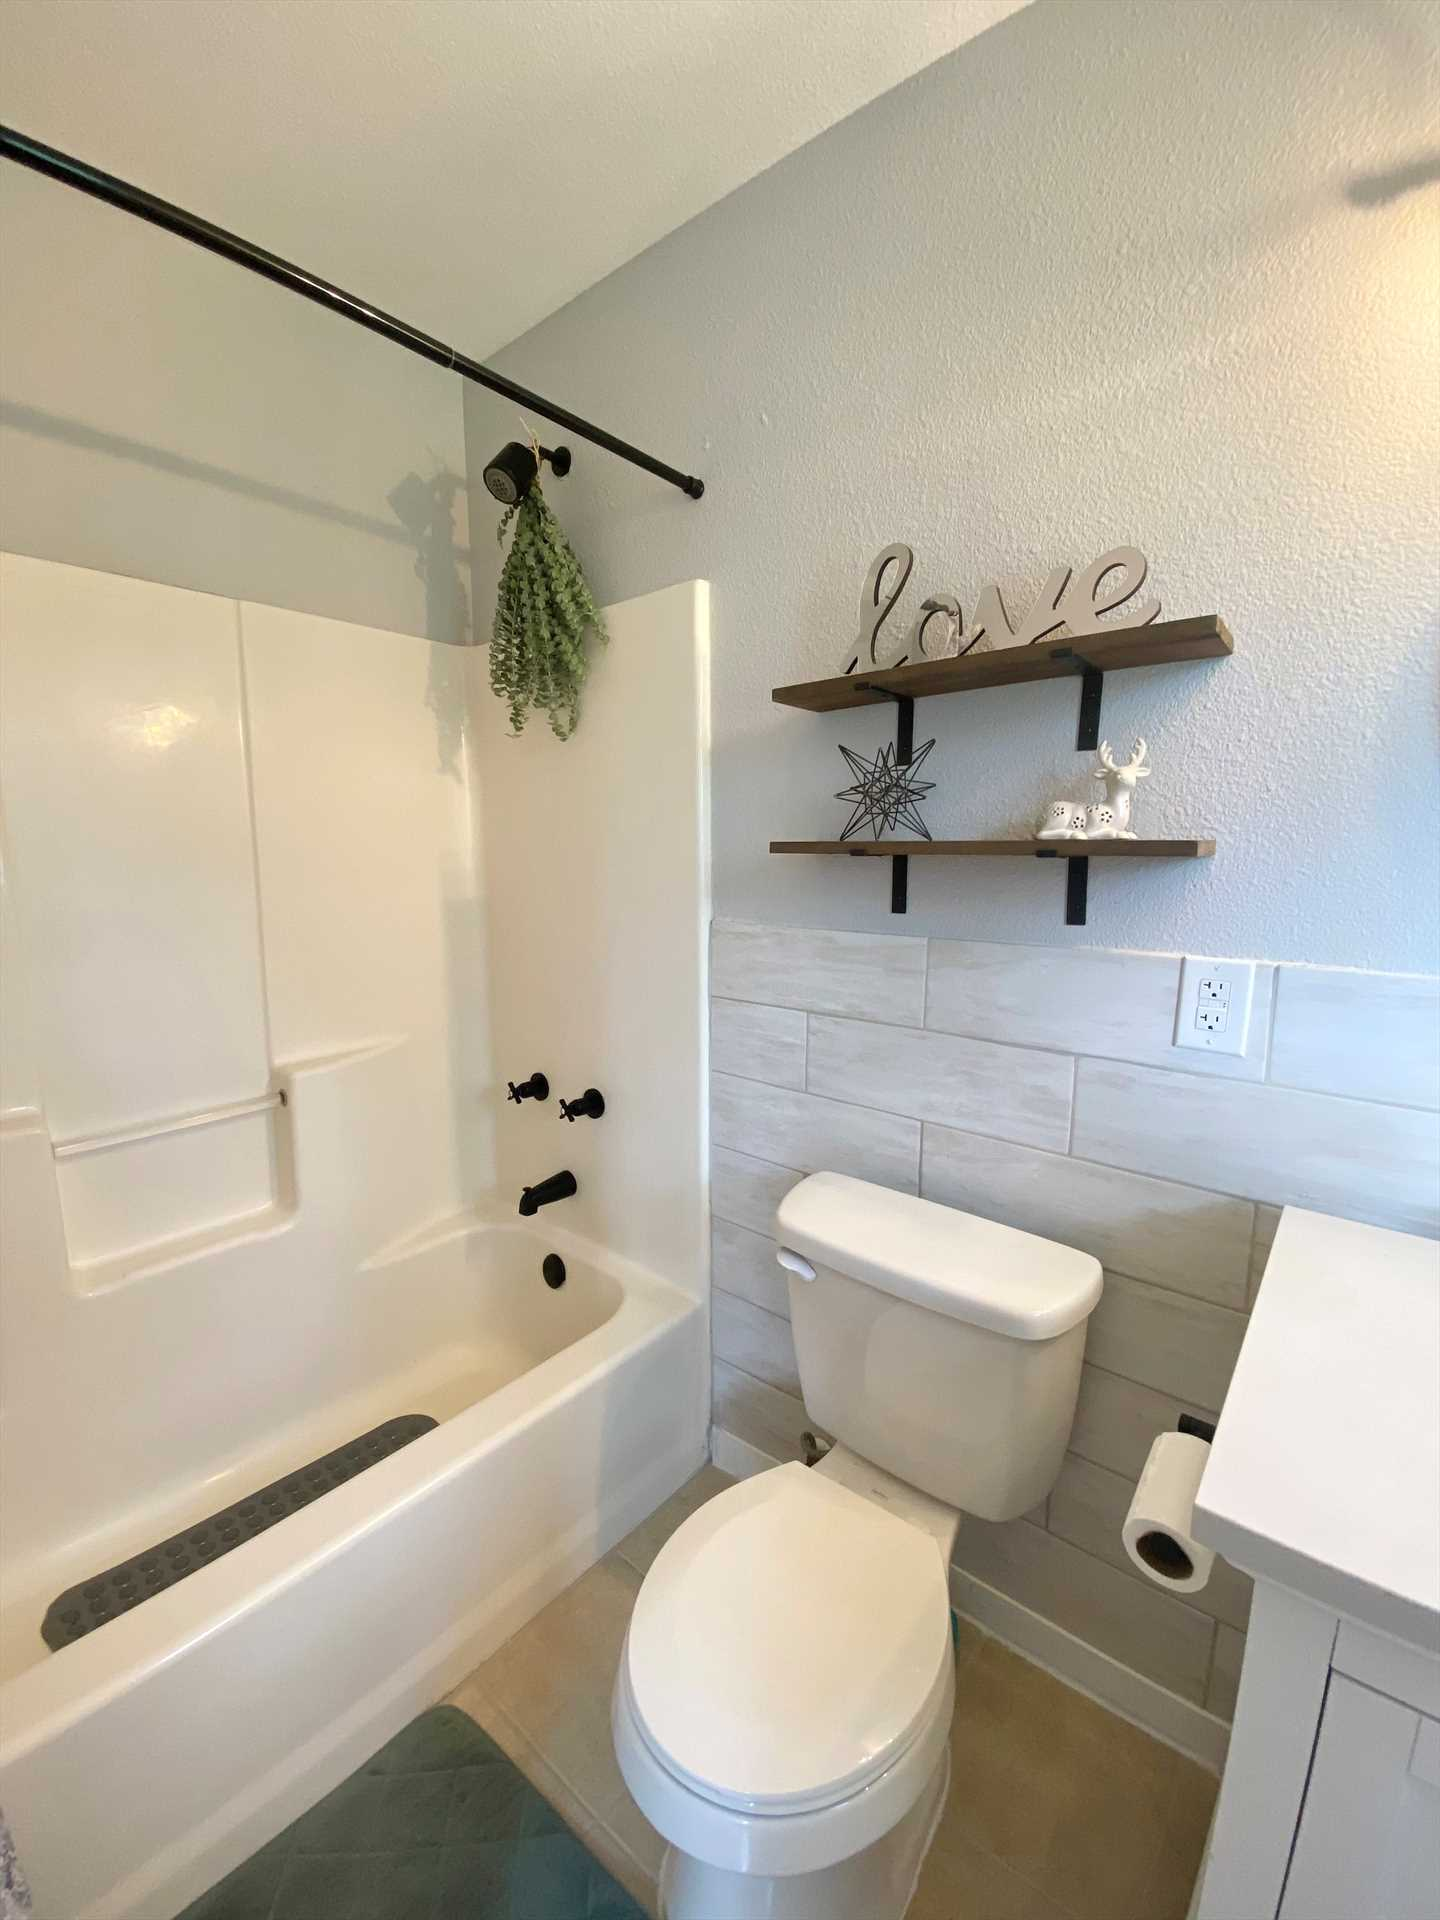 You'll have access to two tub and shower combos at the Lake Retreat, both stocked with fresh and clean linens.